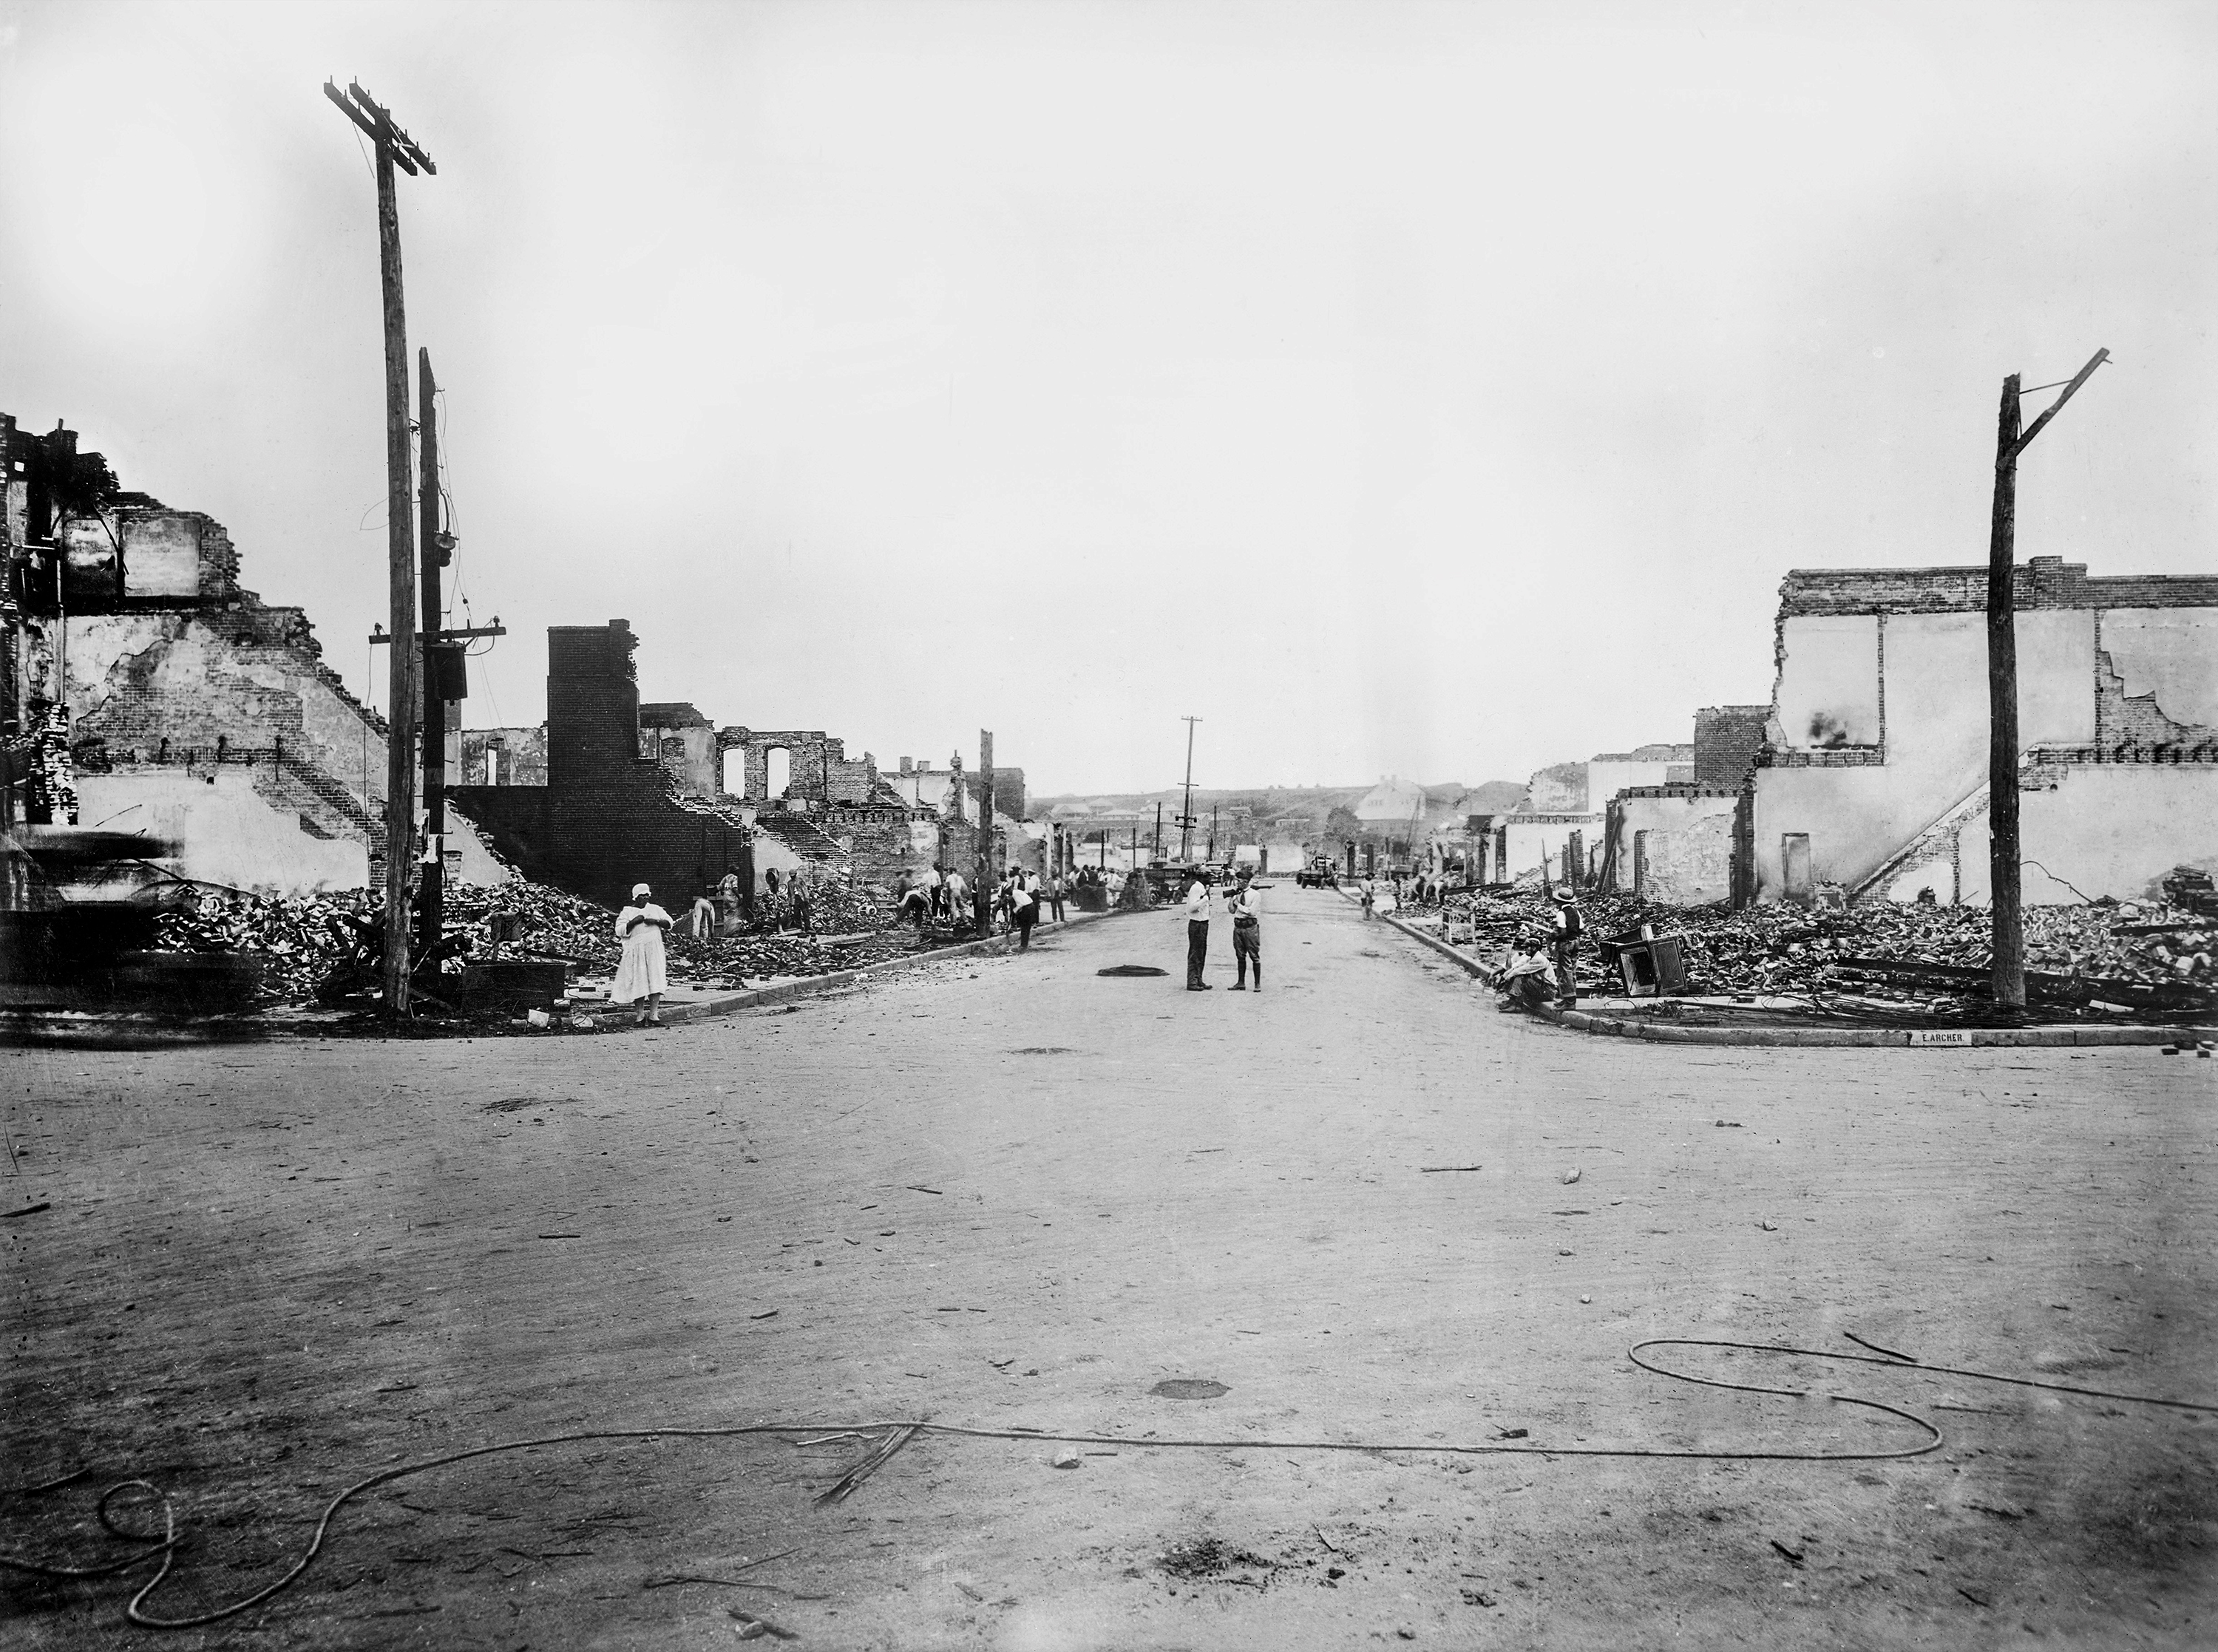 An intersection of two streets in Tulsa showing burned-out houses.